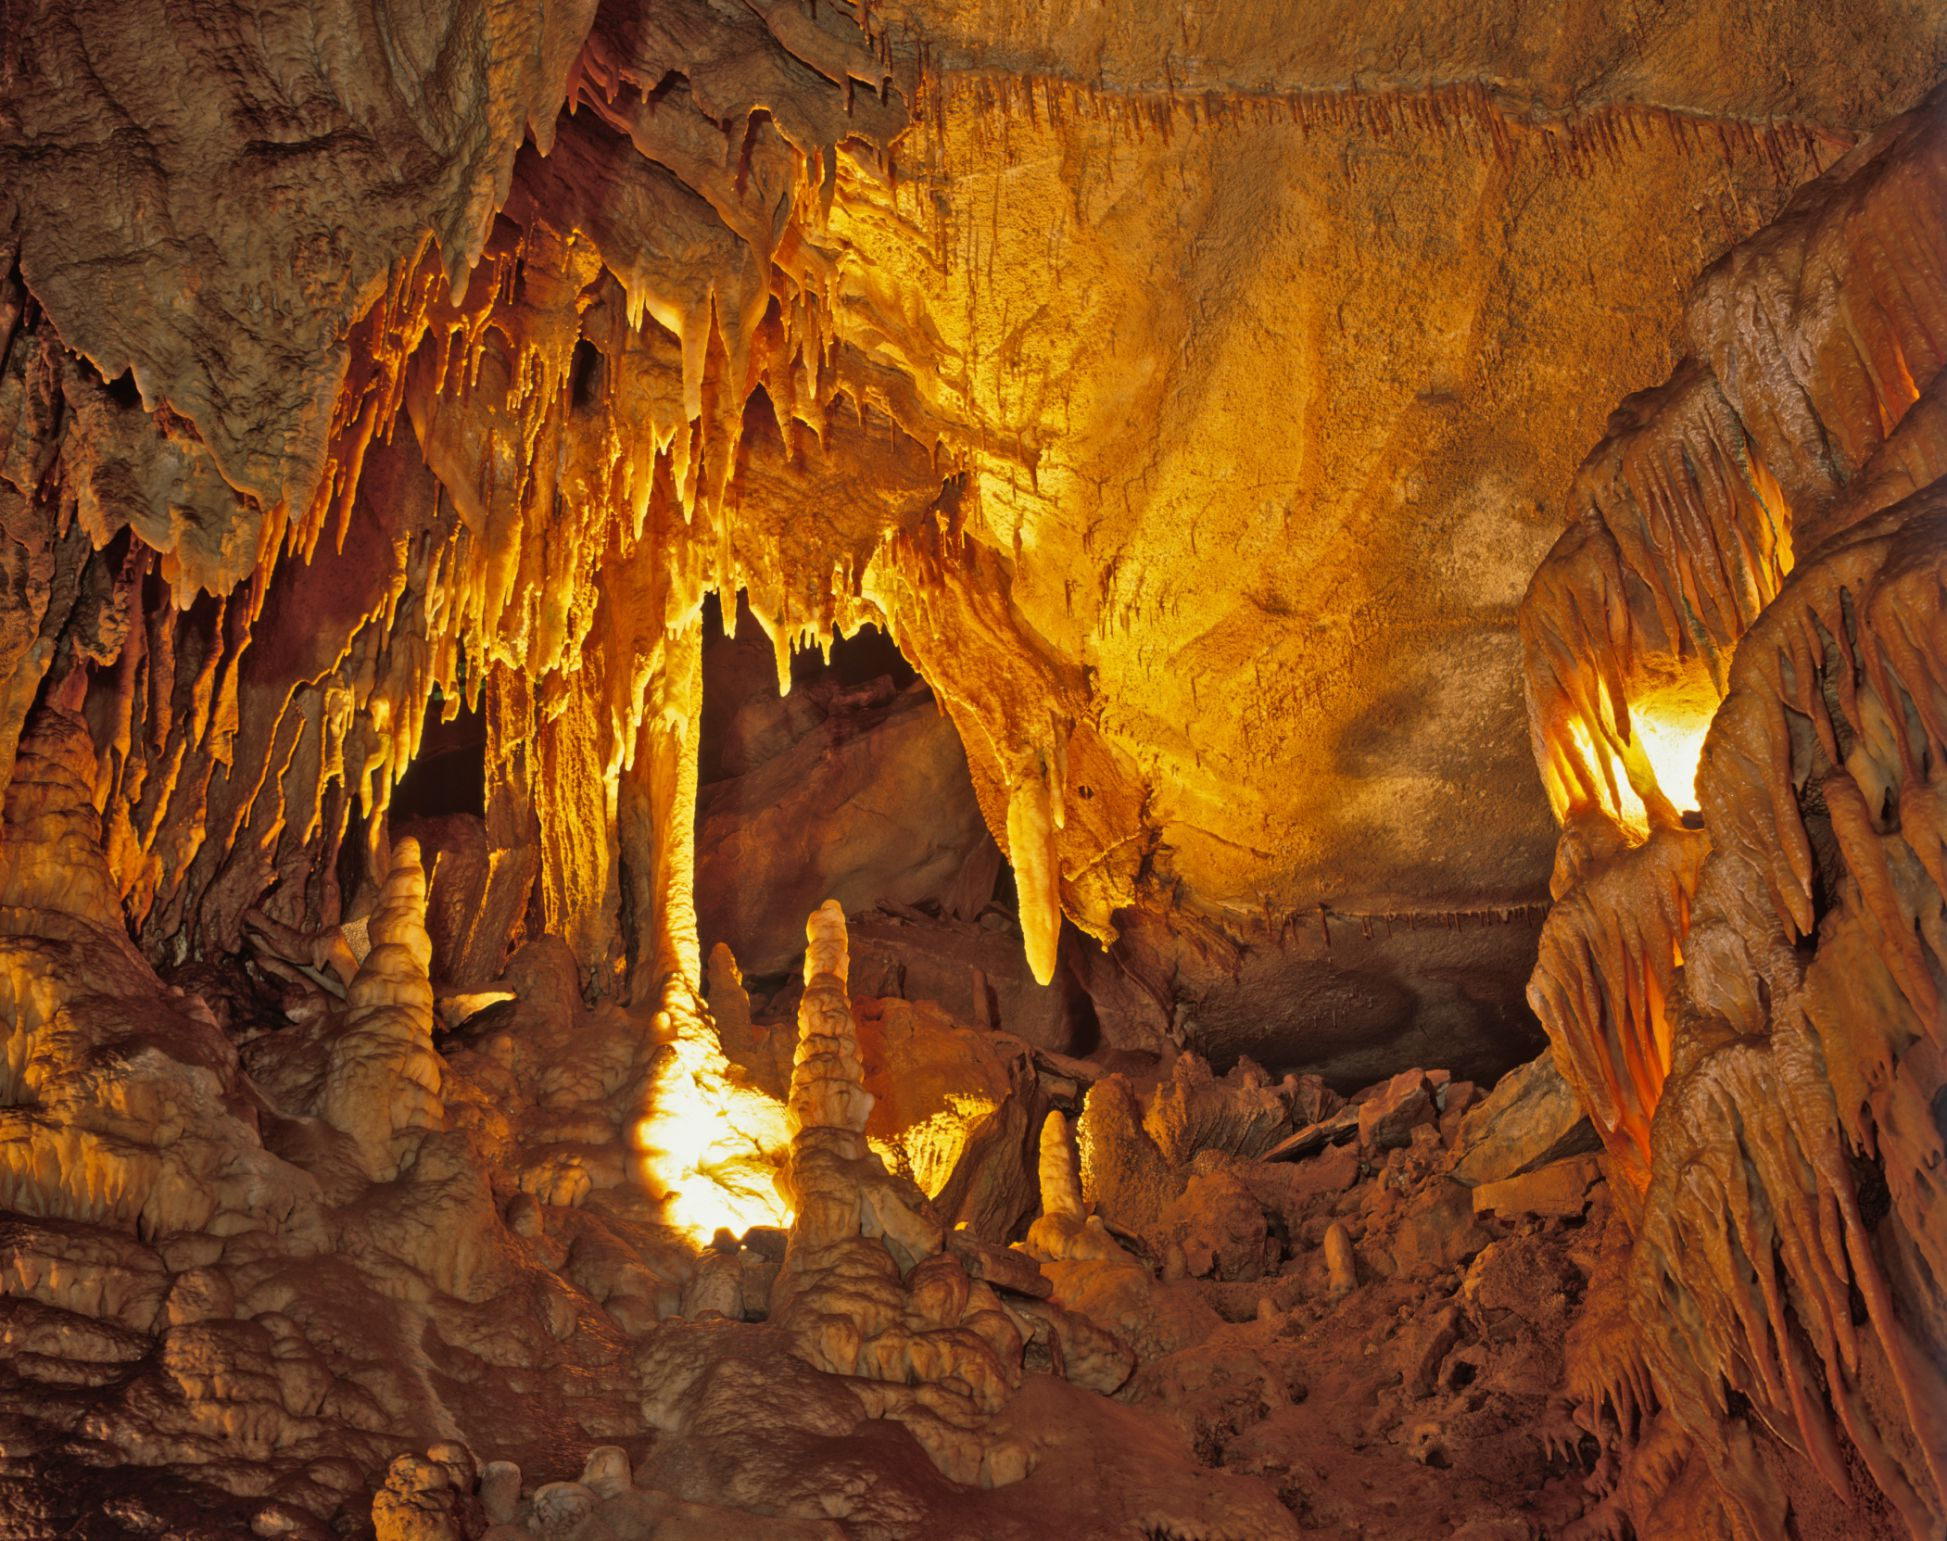 The Limestone Labyrinth of Mammoth Cave National Park, Kentucky